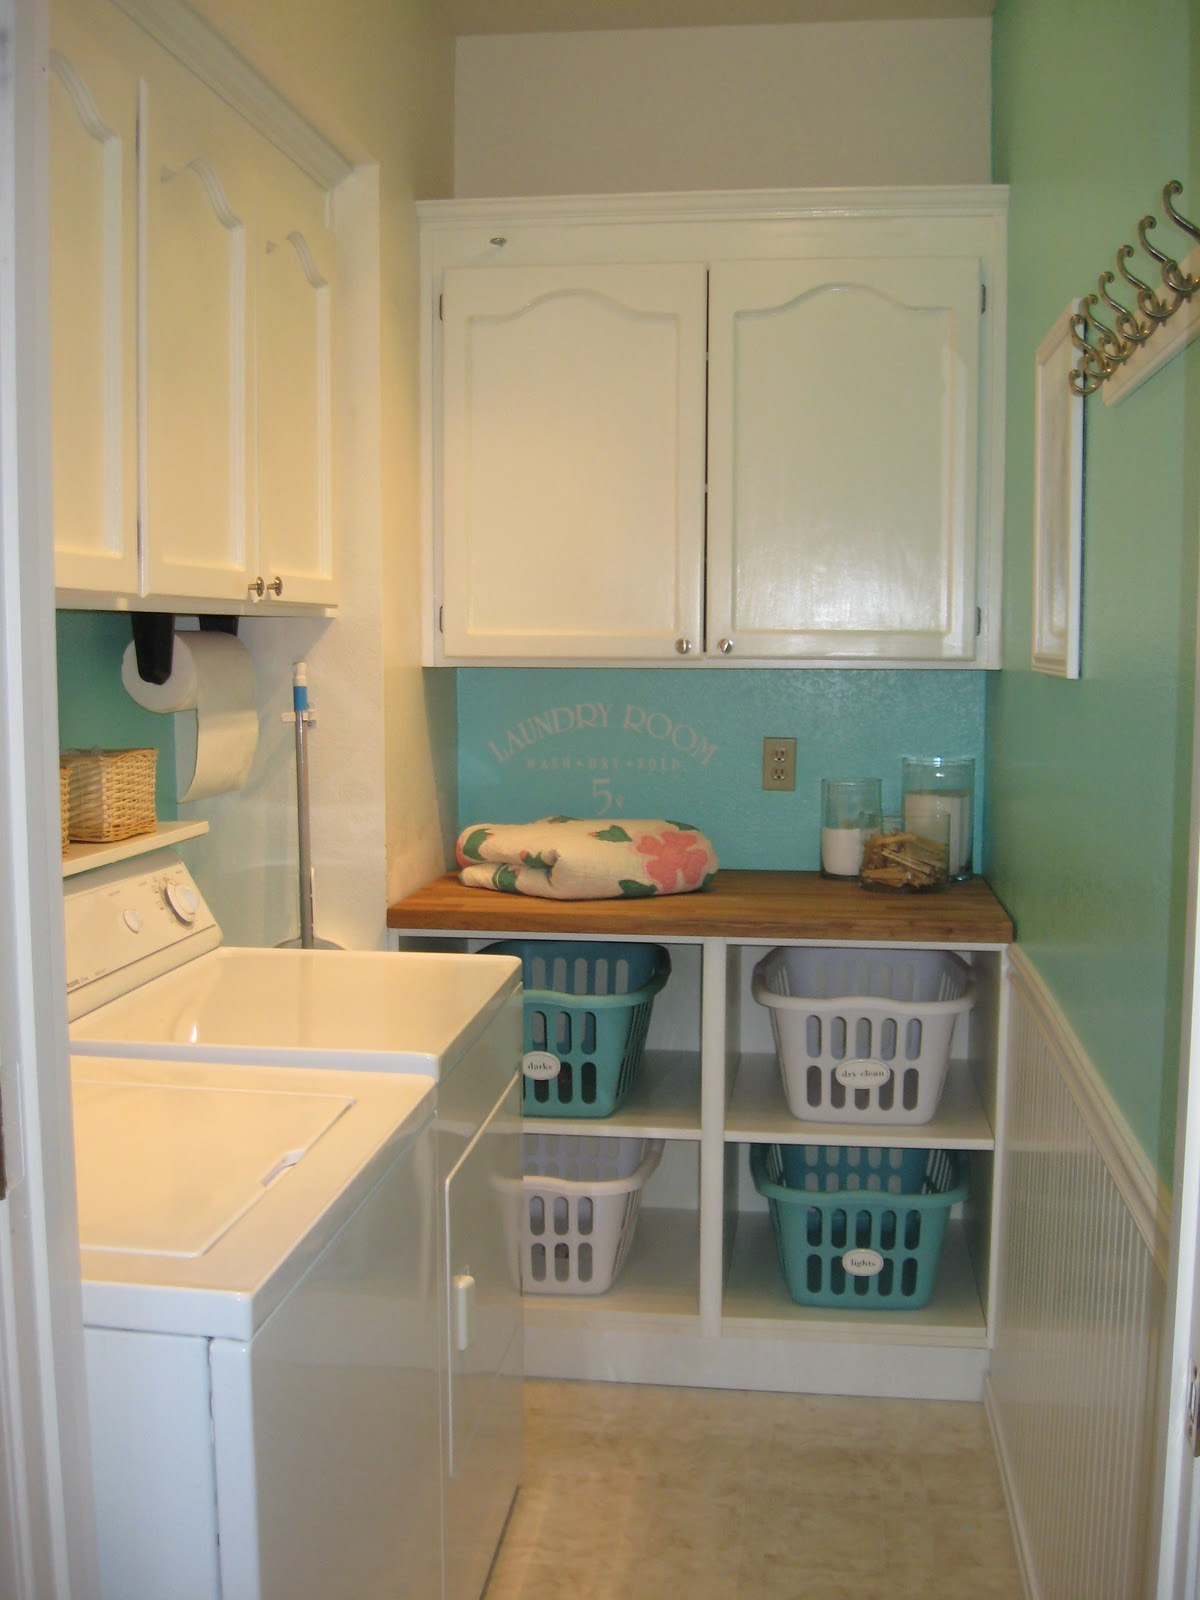 Samsung best dressed laundry room contest nominee home stories a to z - Laundry basket ideas for small space ideas ...